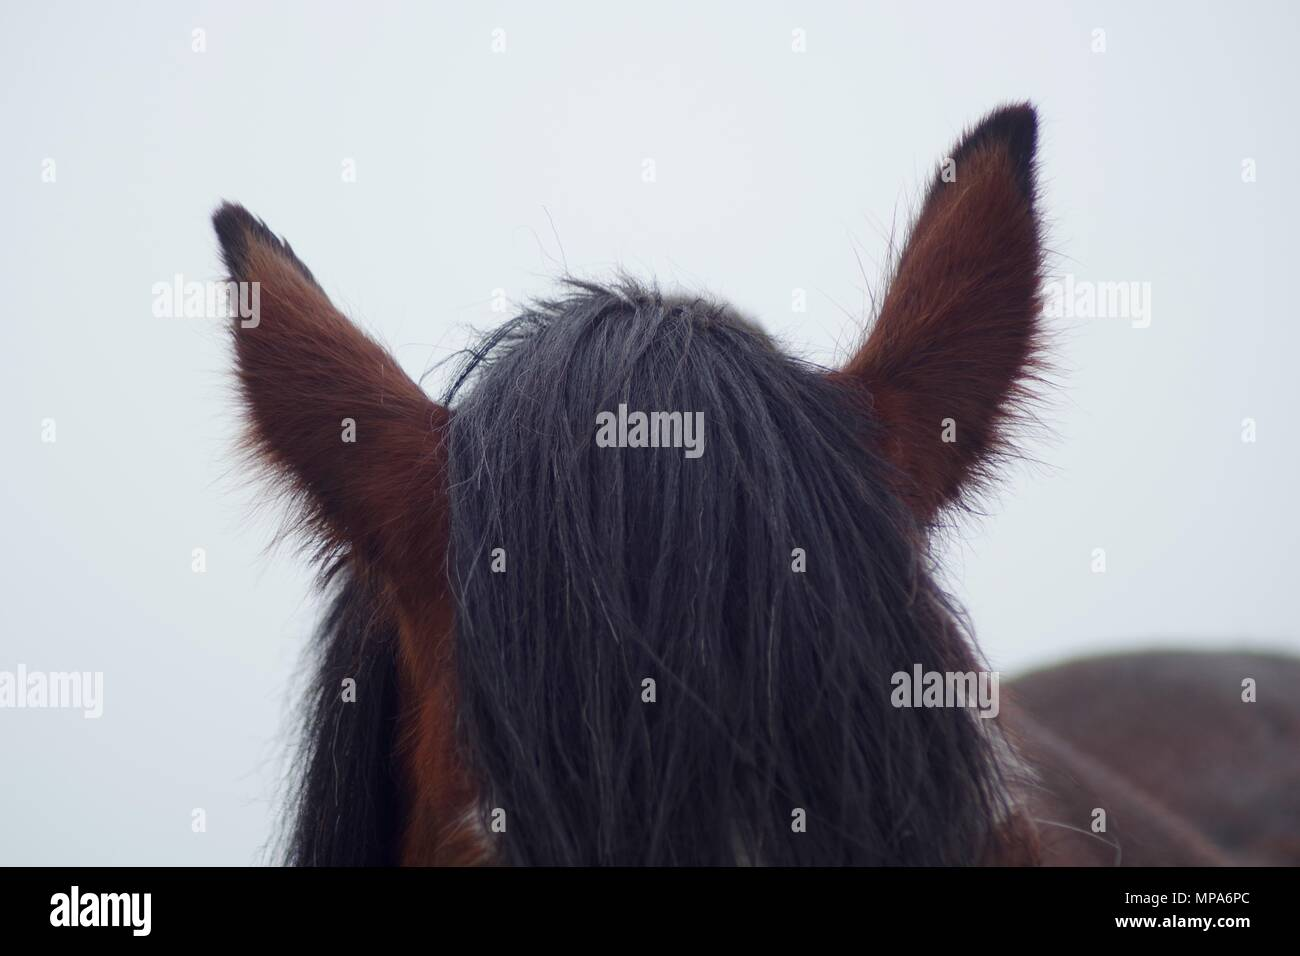 Shire Horse on Doonies Rare Breed Farm. Cove Bay, Aberdeen, Scotland, UK. May, 2018. - Stock Image